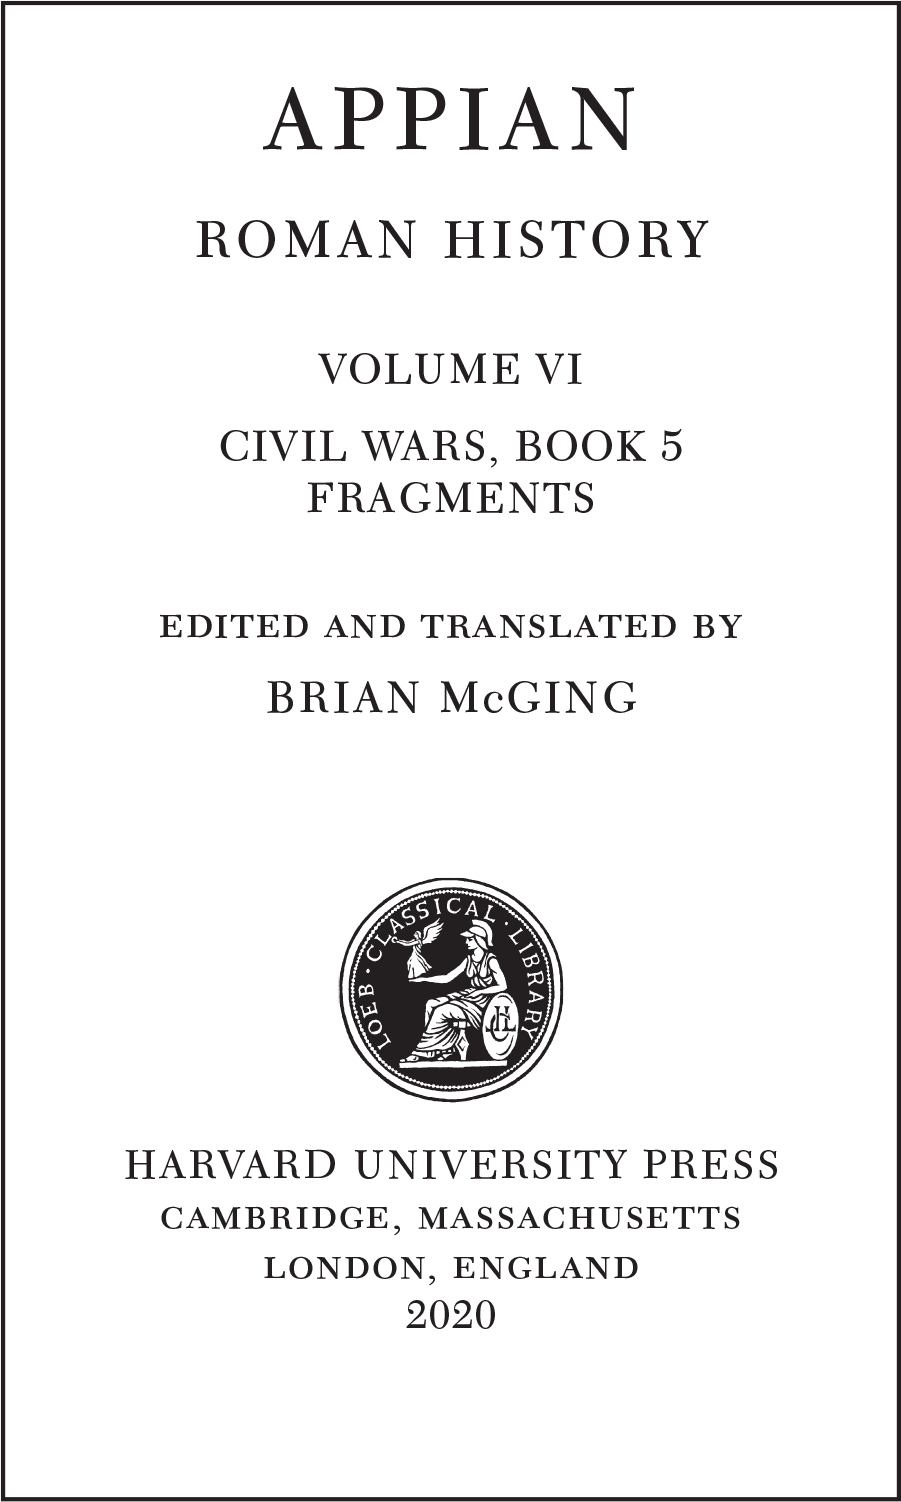 APPIAN ROMAN HISTORY VOLUME VI CIVIL WARS, BOOK 5 FRAGMENTS edited and translated by BRIAN McGING  HARVARD UNIVERSITY PRESS cambridge, massachusetts london, england 2020